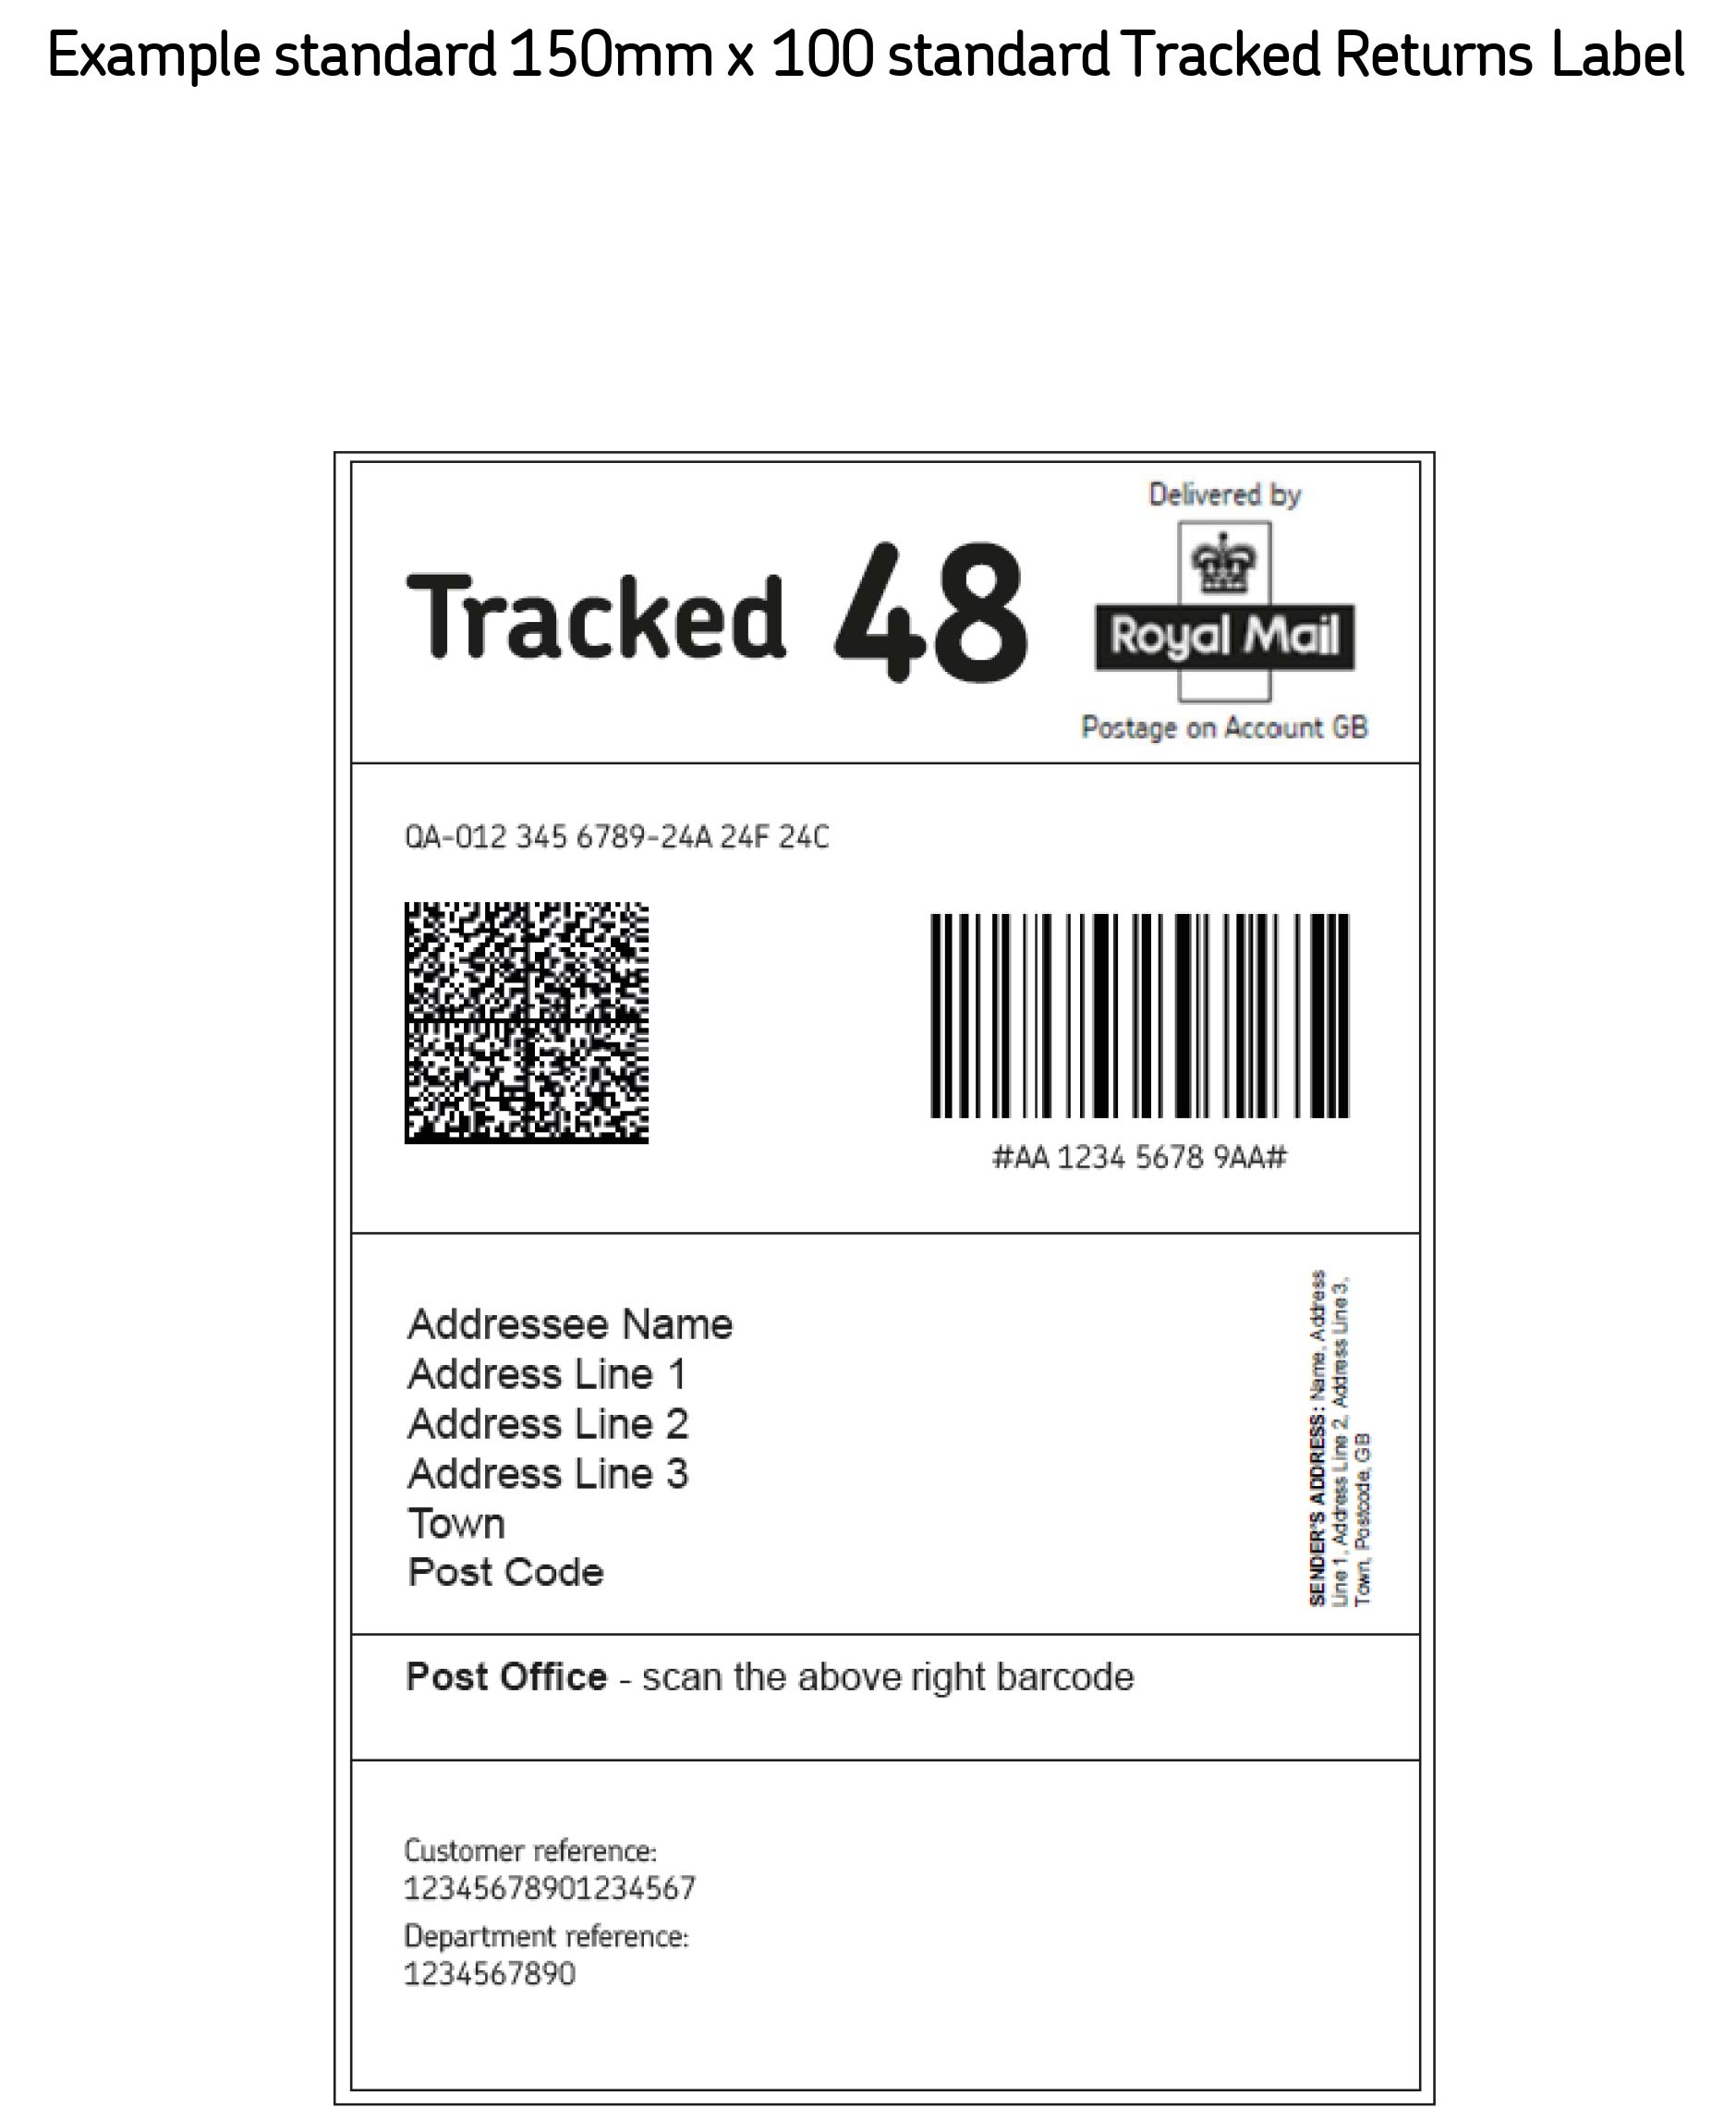 paperuk Address Labels Invoices Despatch Notes – Return Label Template